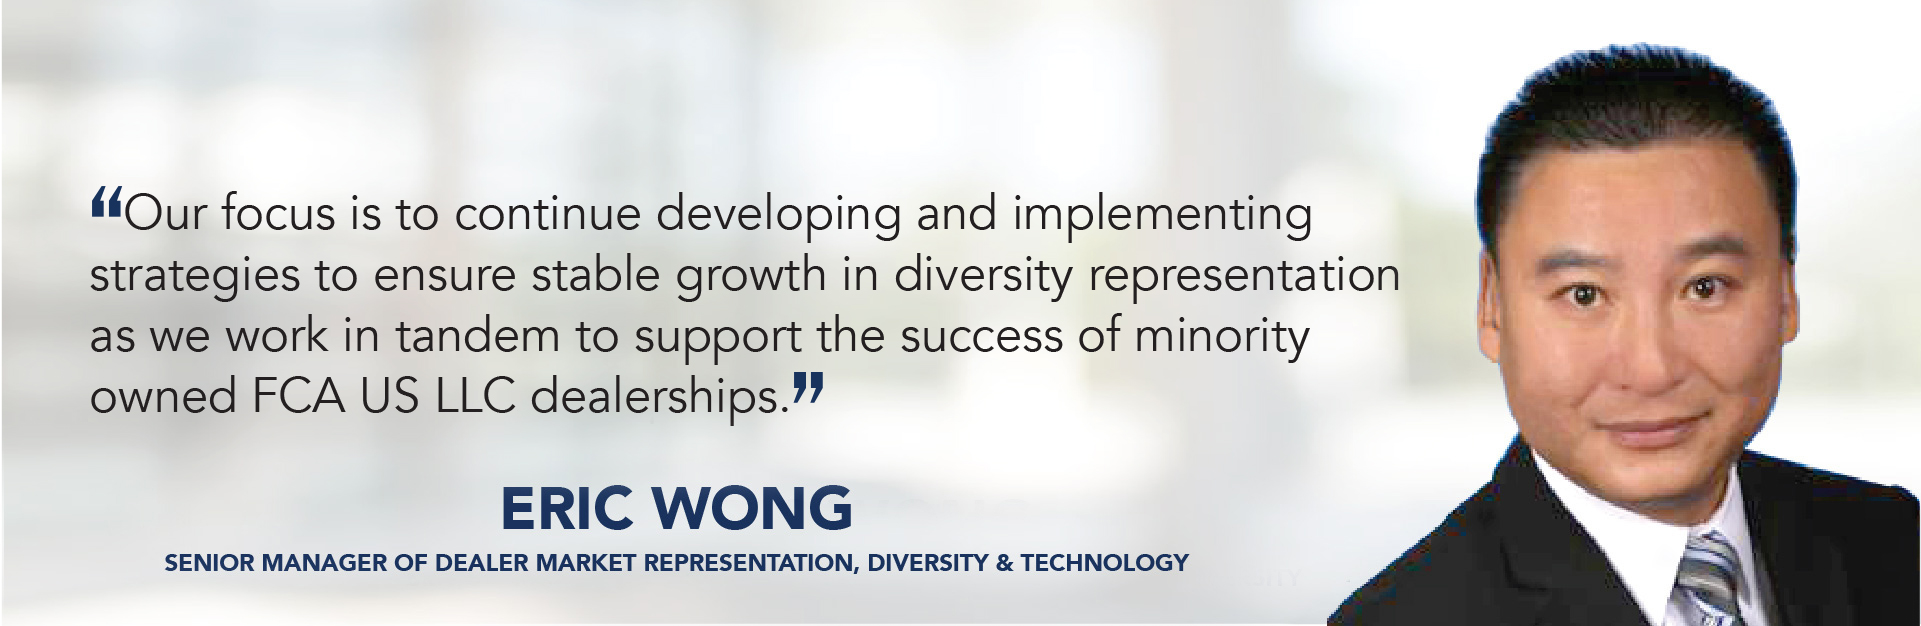 Our focus is to continue developing and implementing  strategies to ensure stable growth in diversity representation as we work in tandem to support the success of minority owned FCA dealerships. - Eric Wong